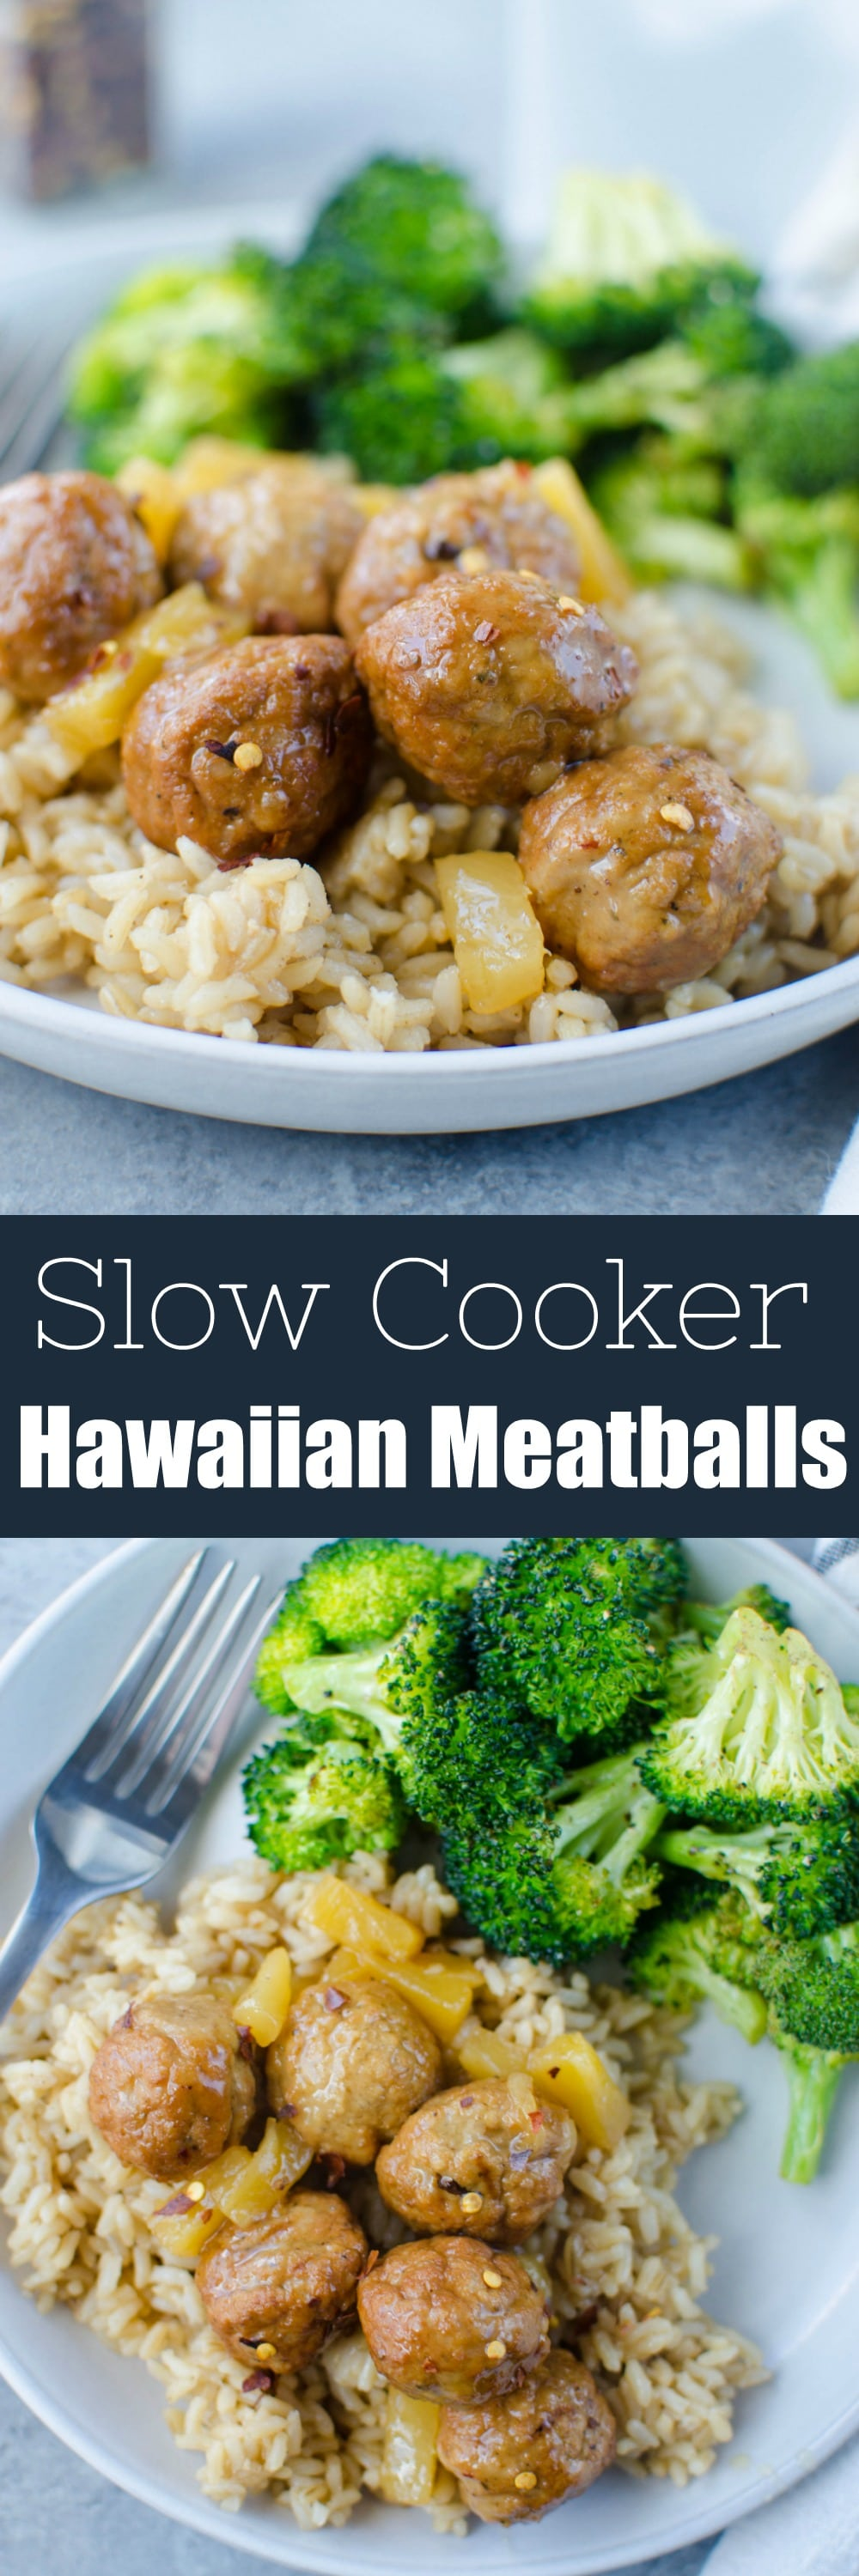 Slow Cooker Hawaiian Meatballs - easy weeknight dinner recipe! Meatballs in a sweet and sour pineapple sauce. Kid-friendly and made in the crockpot!